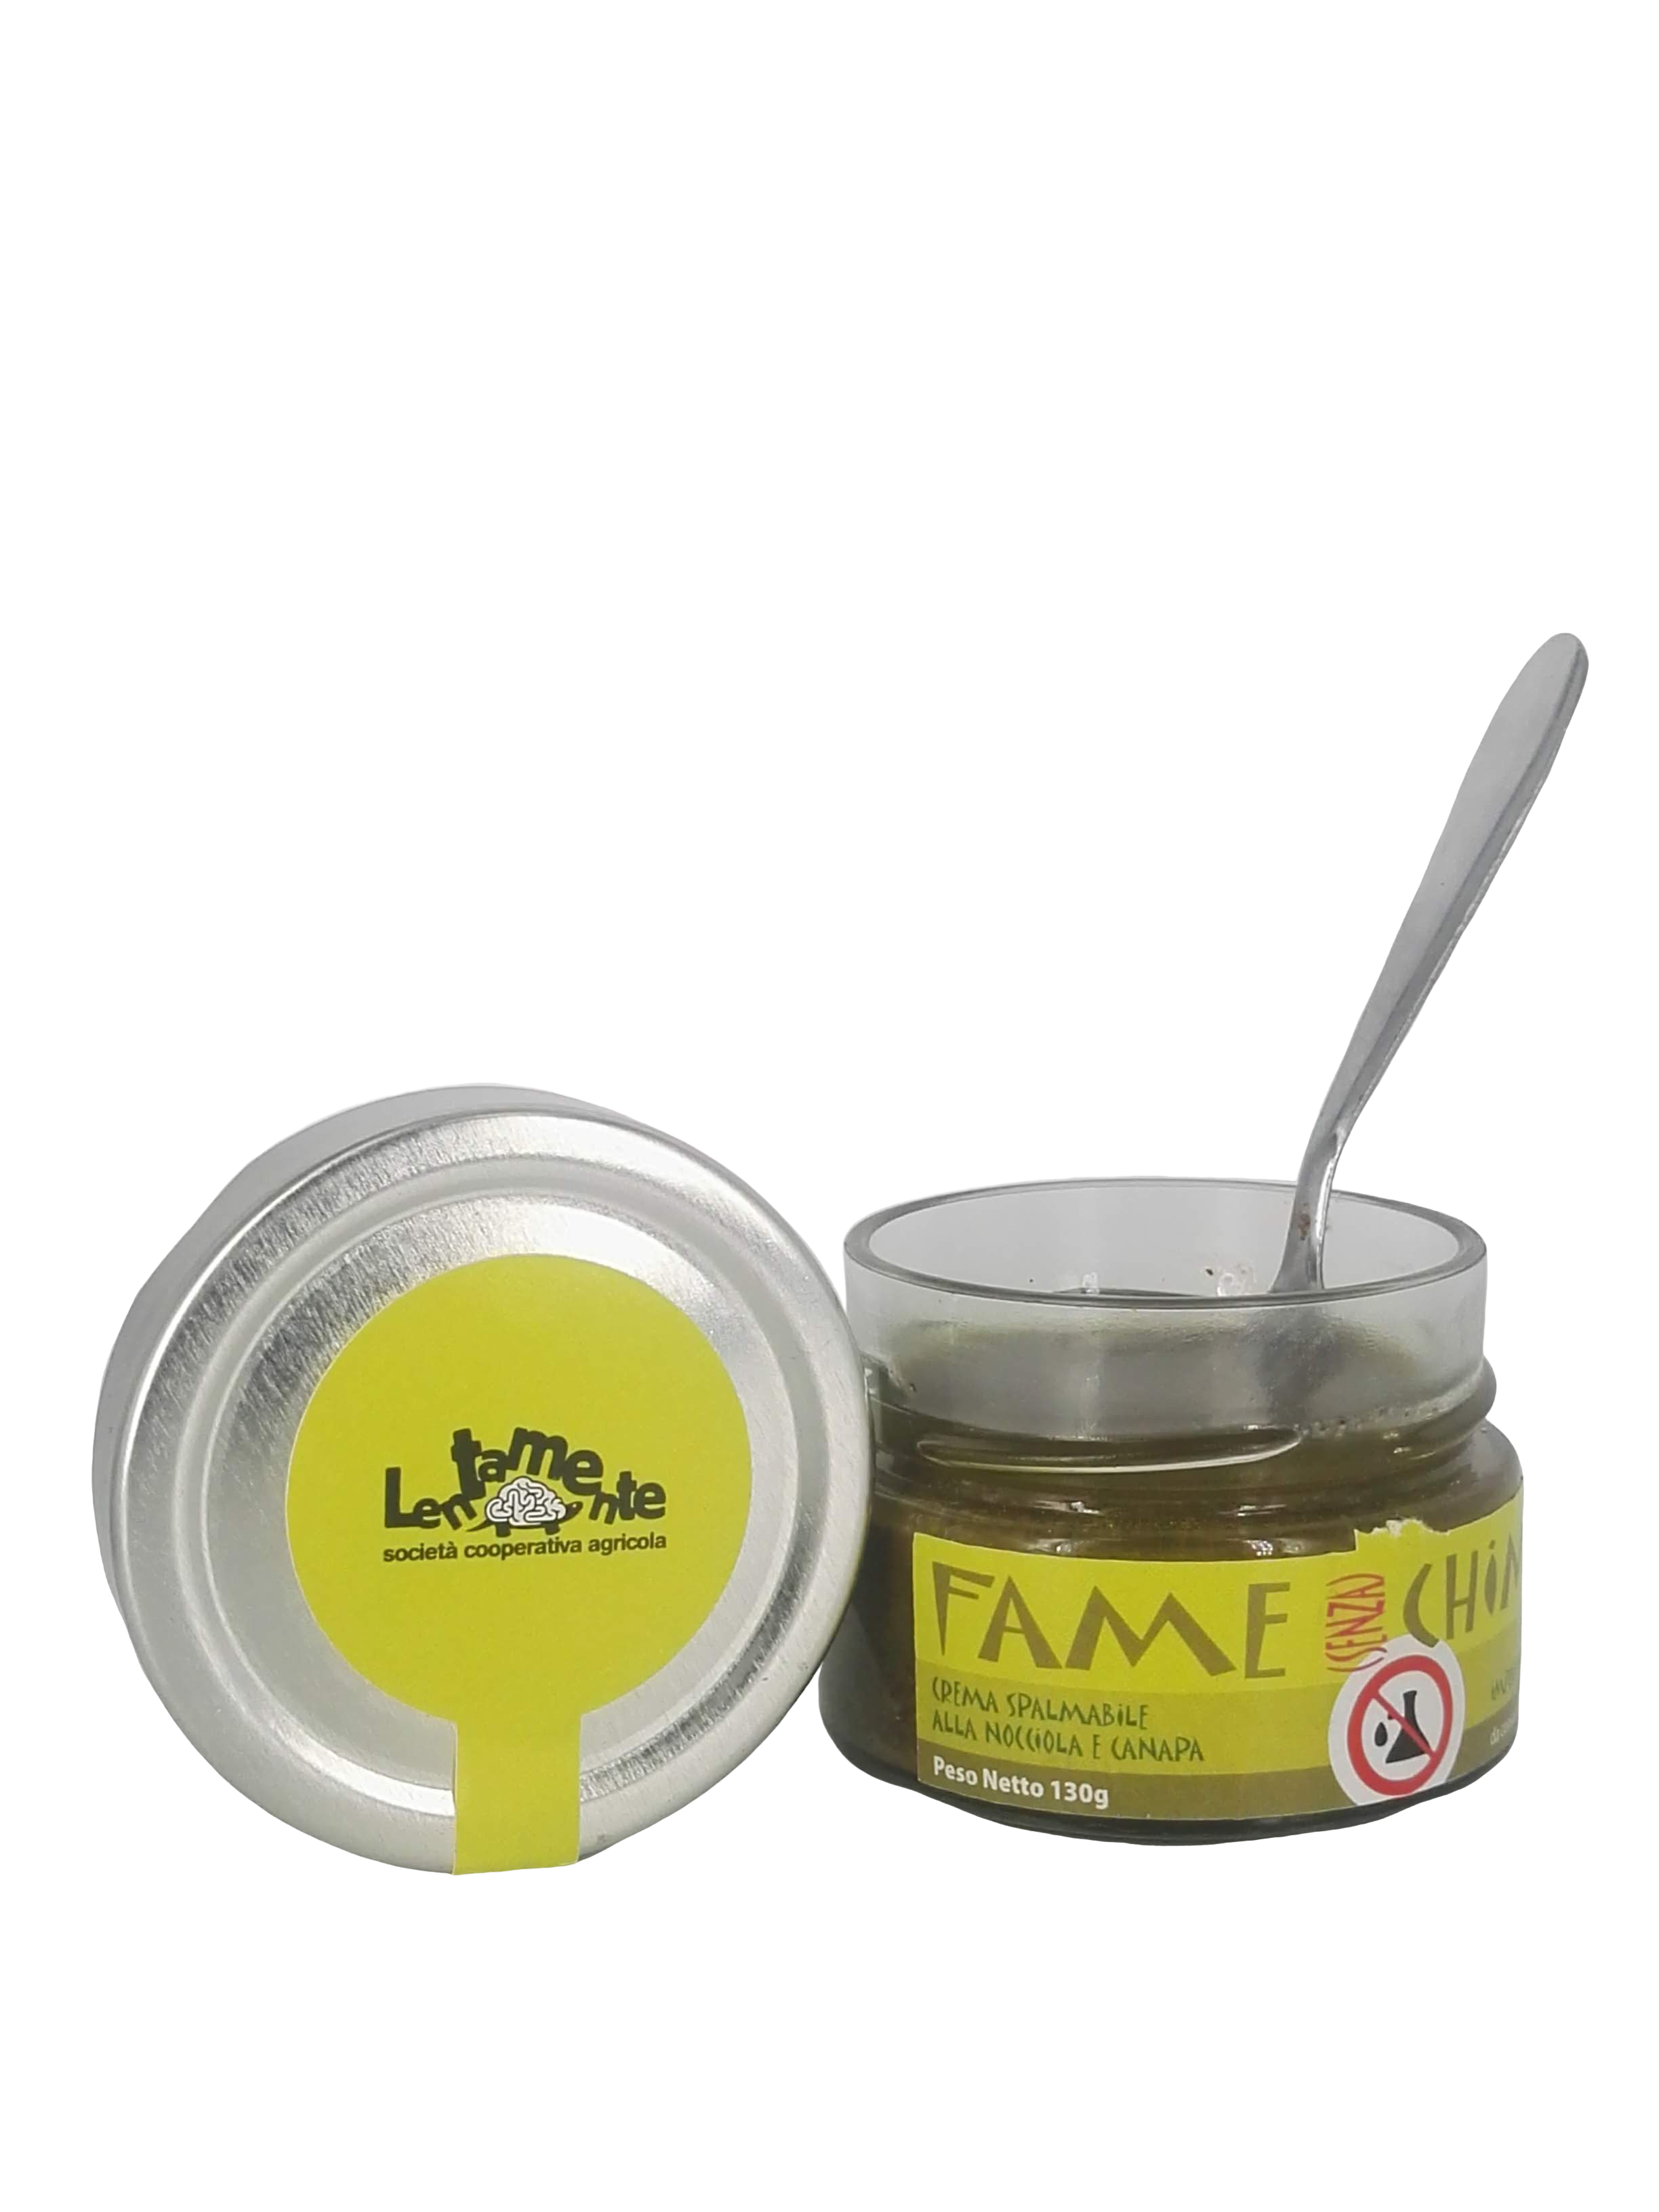 100% Organic Hazelnuts & Hemp Spreadable - Fame (senza) Chimica